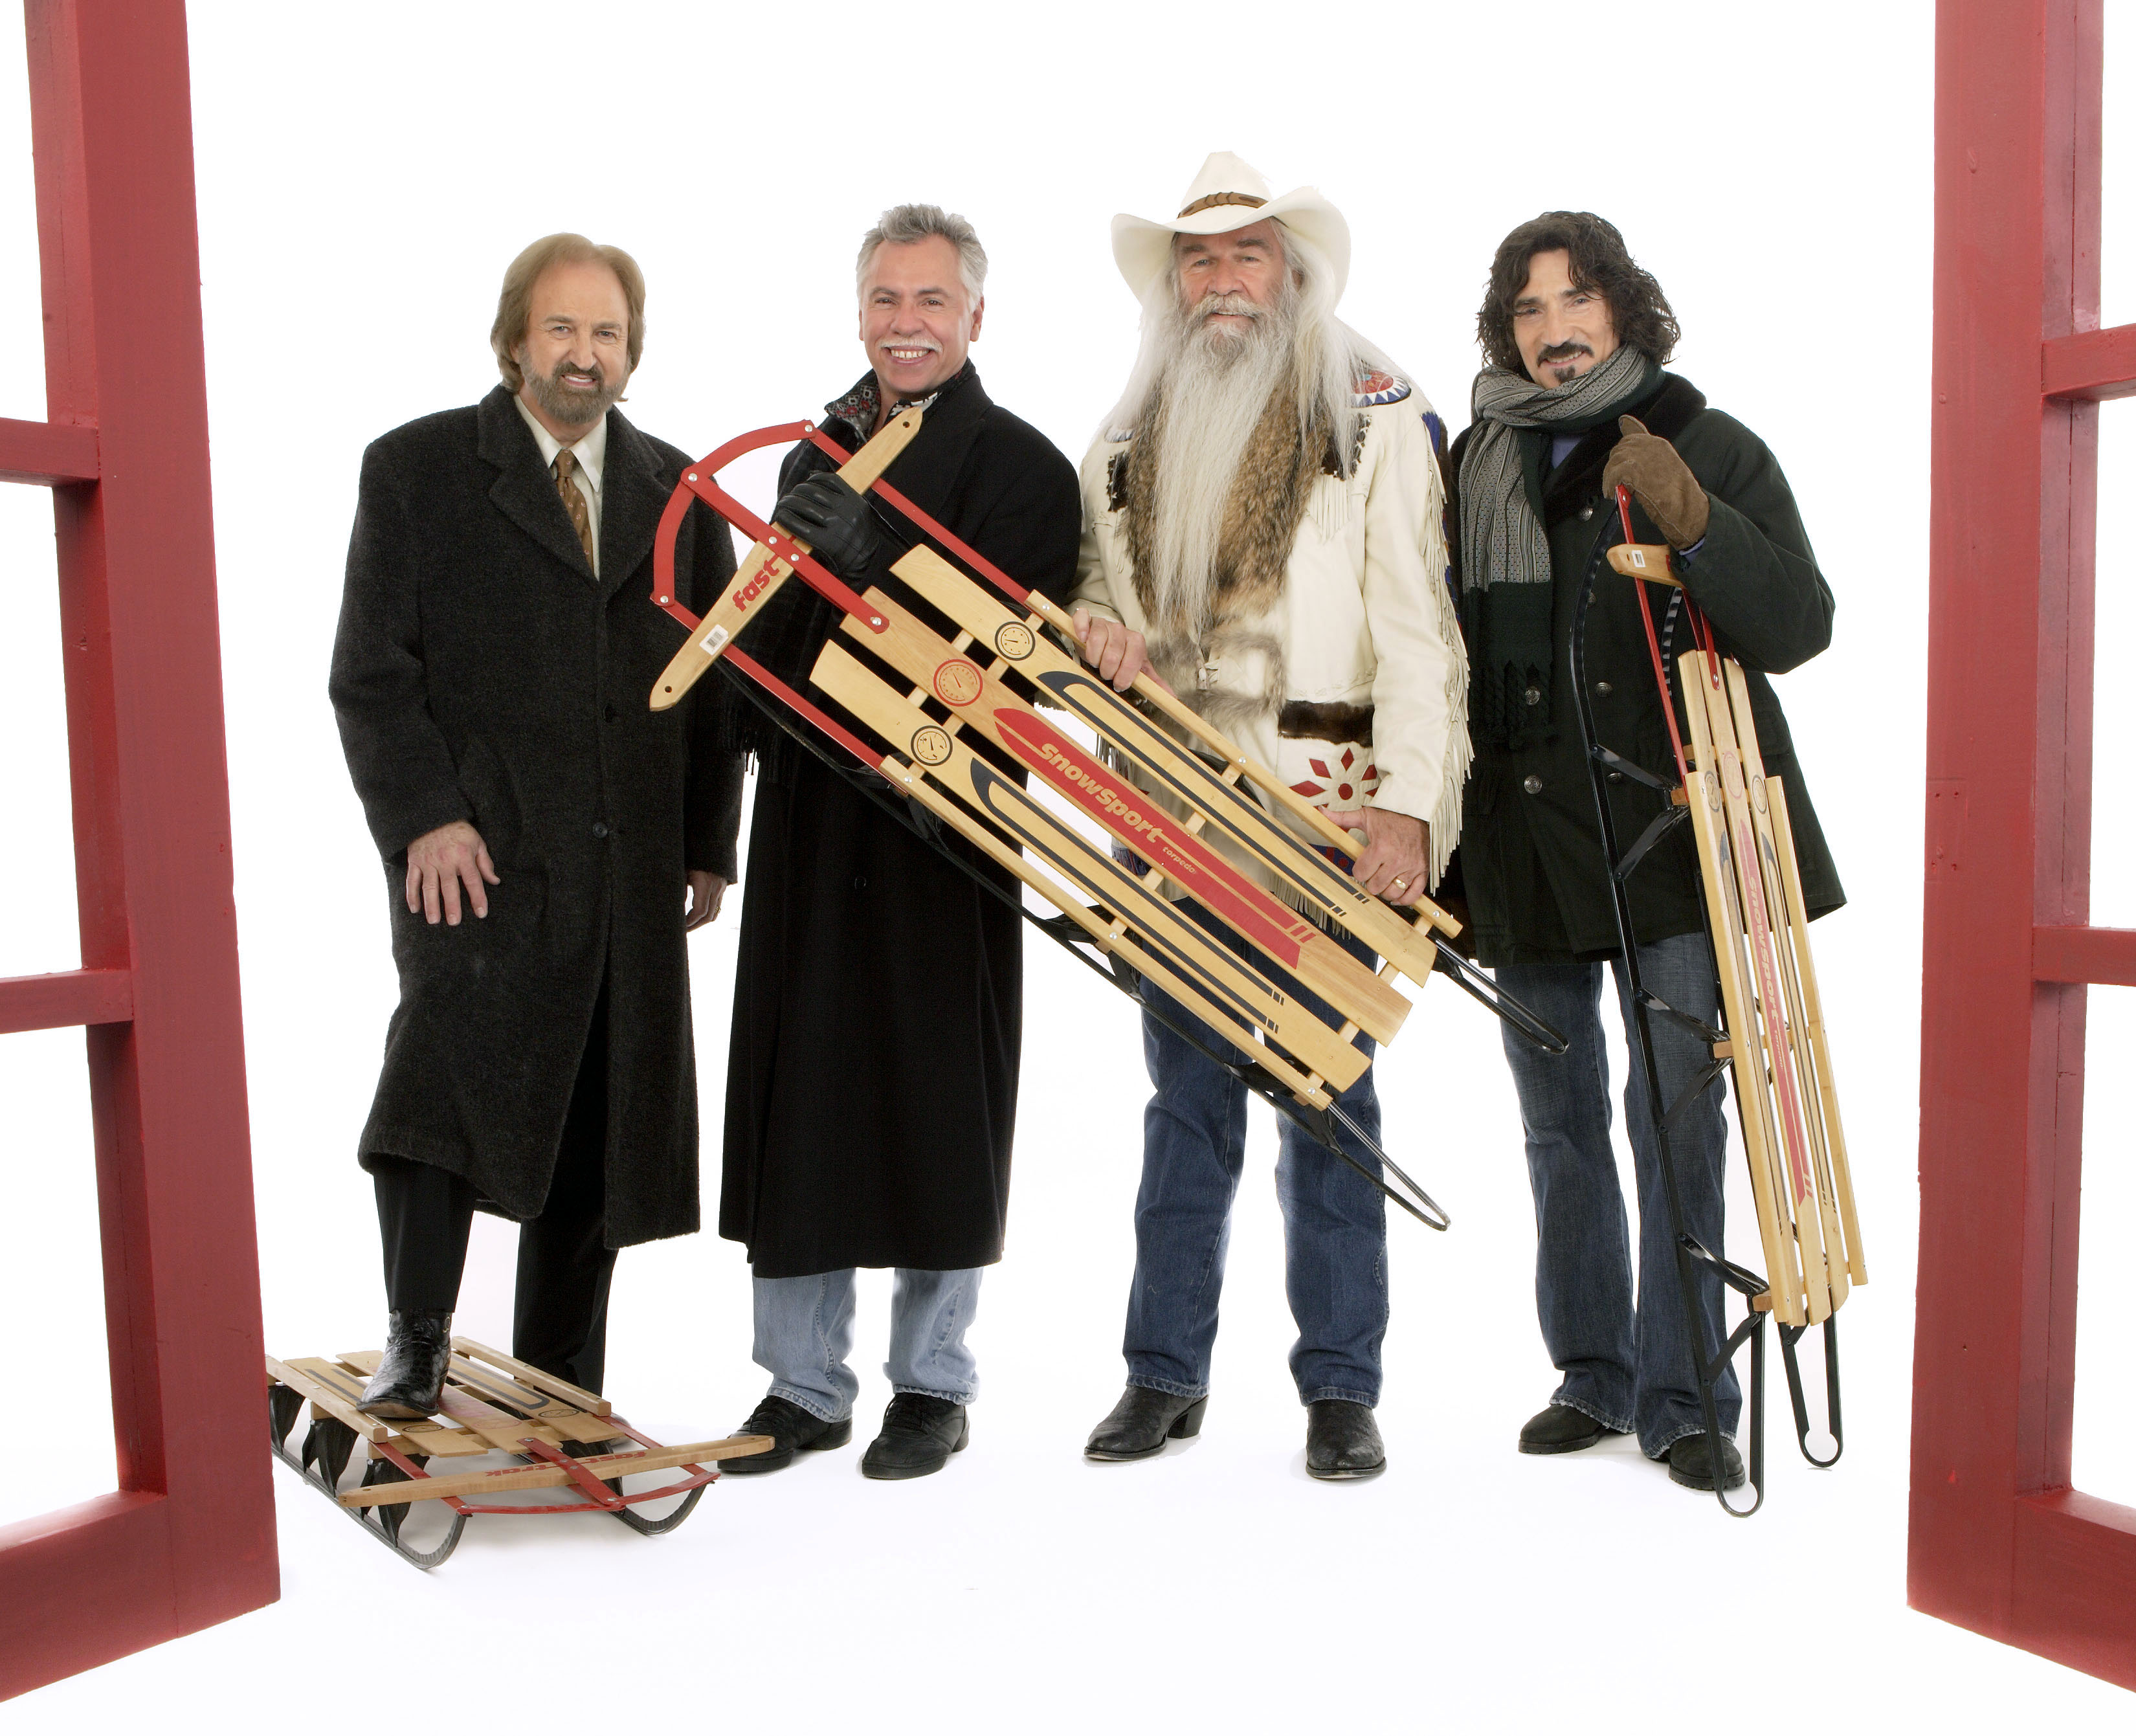 Celebrate Christmas with the Oak Ridge Boys - The Blade